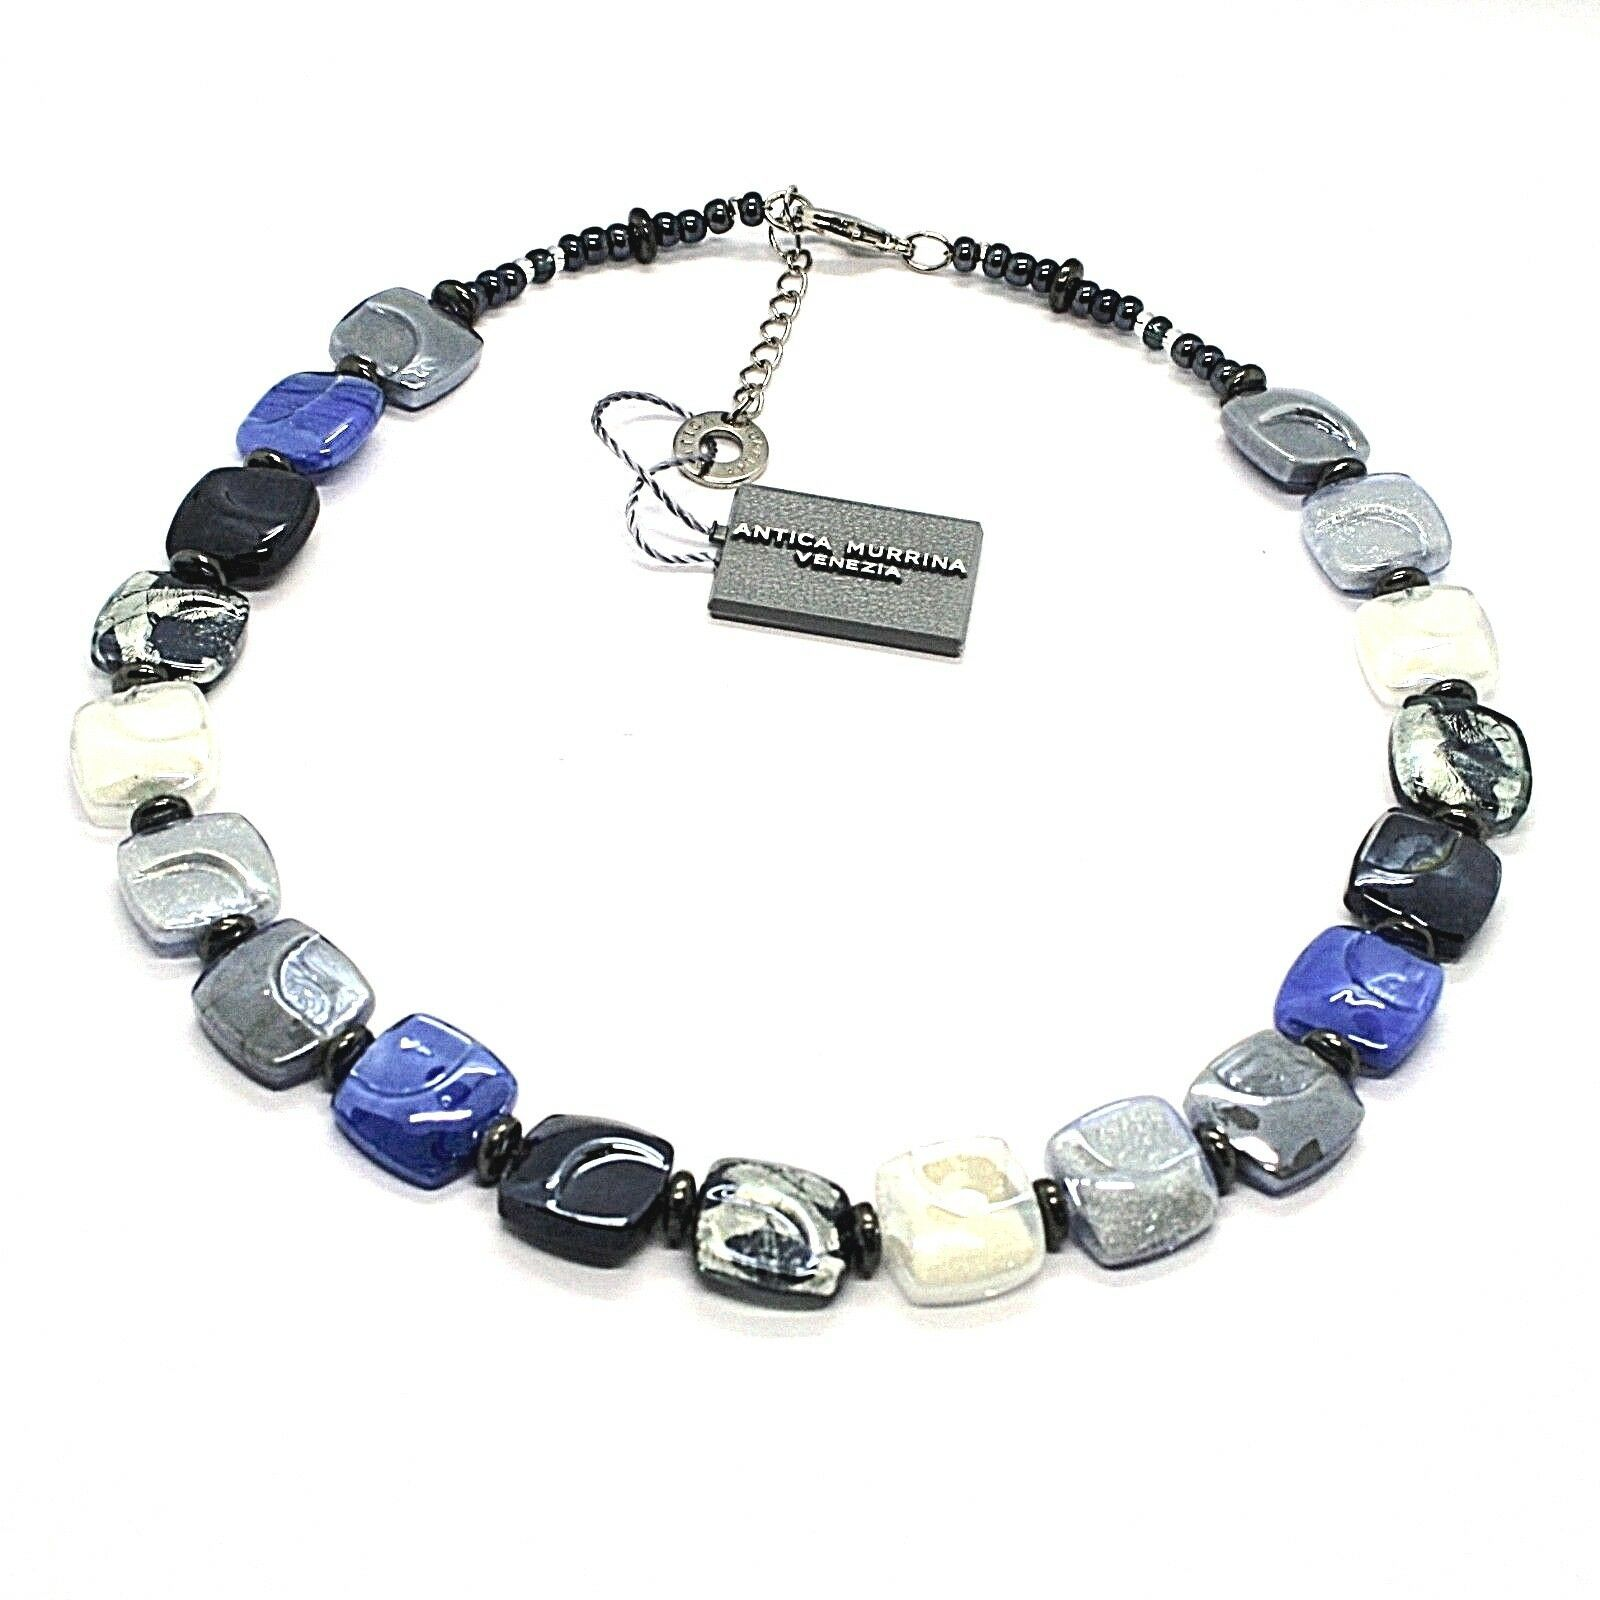 NECKLACE ANTICA MURRINA VENEZIA WITH MURANO GLASS BLUE SILVER BLACK CO988A06